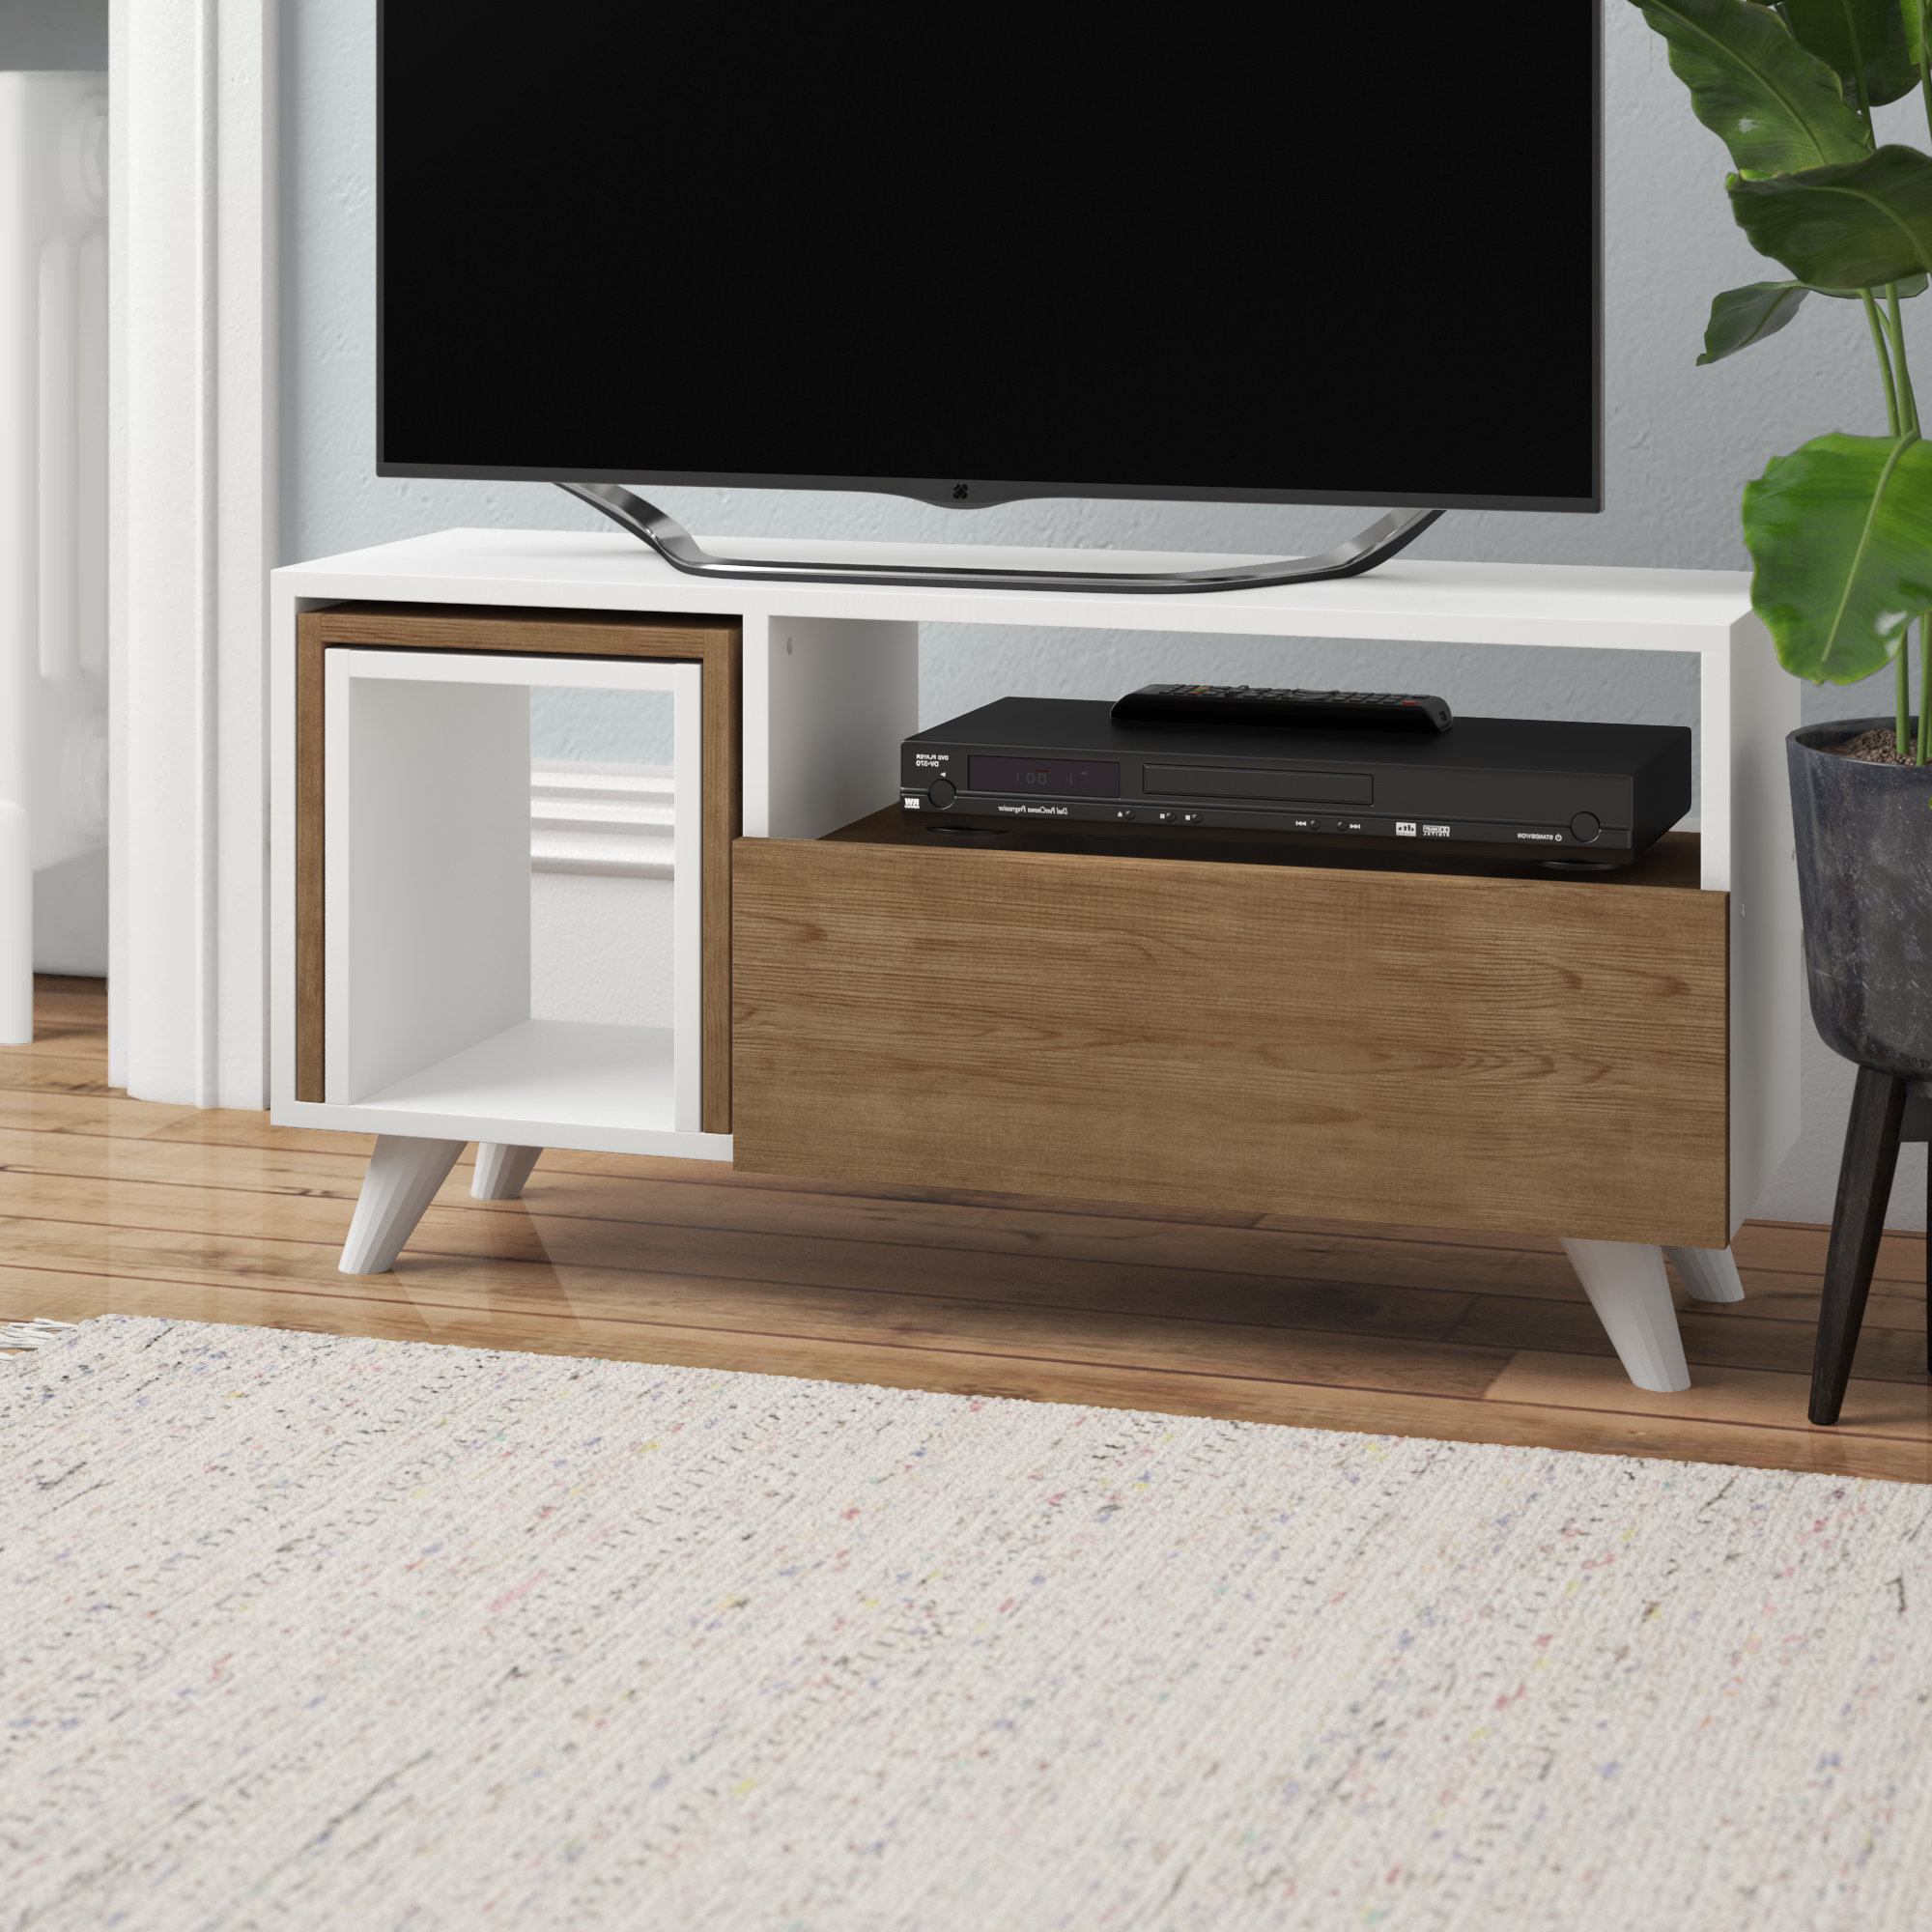 Tv Stand With Side Tables | Wayfair.co (View 19 of 20)